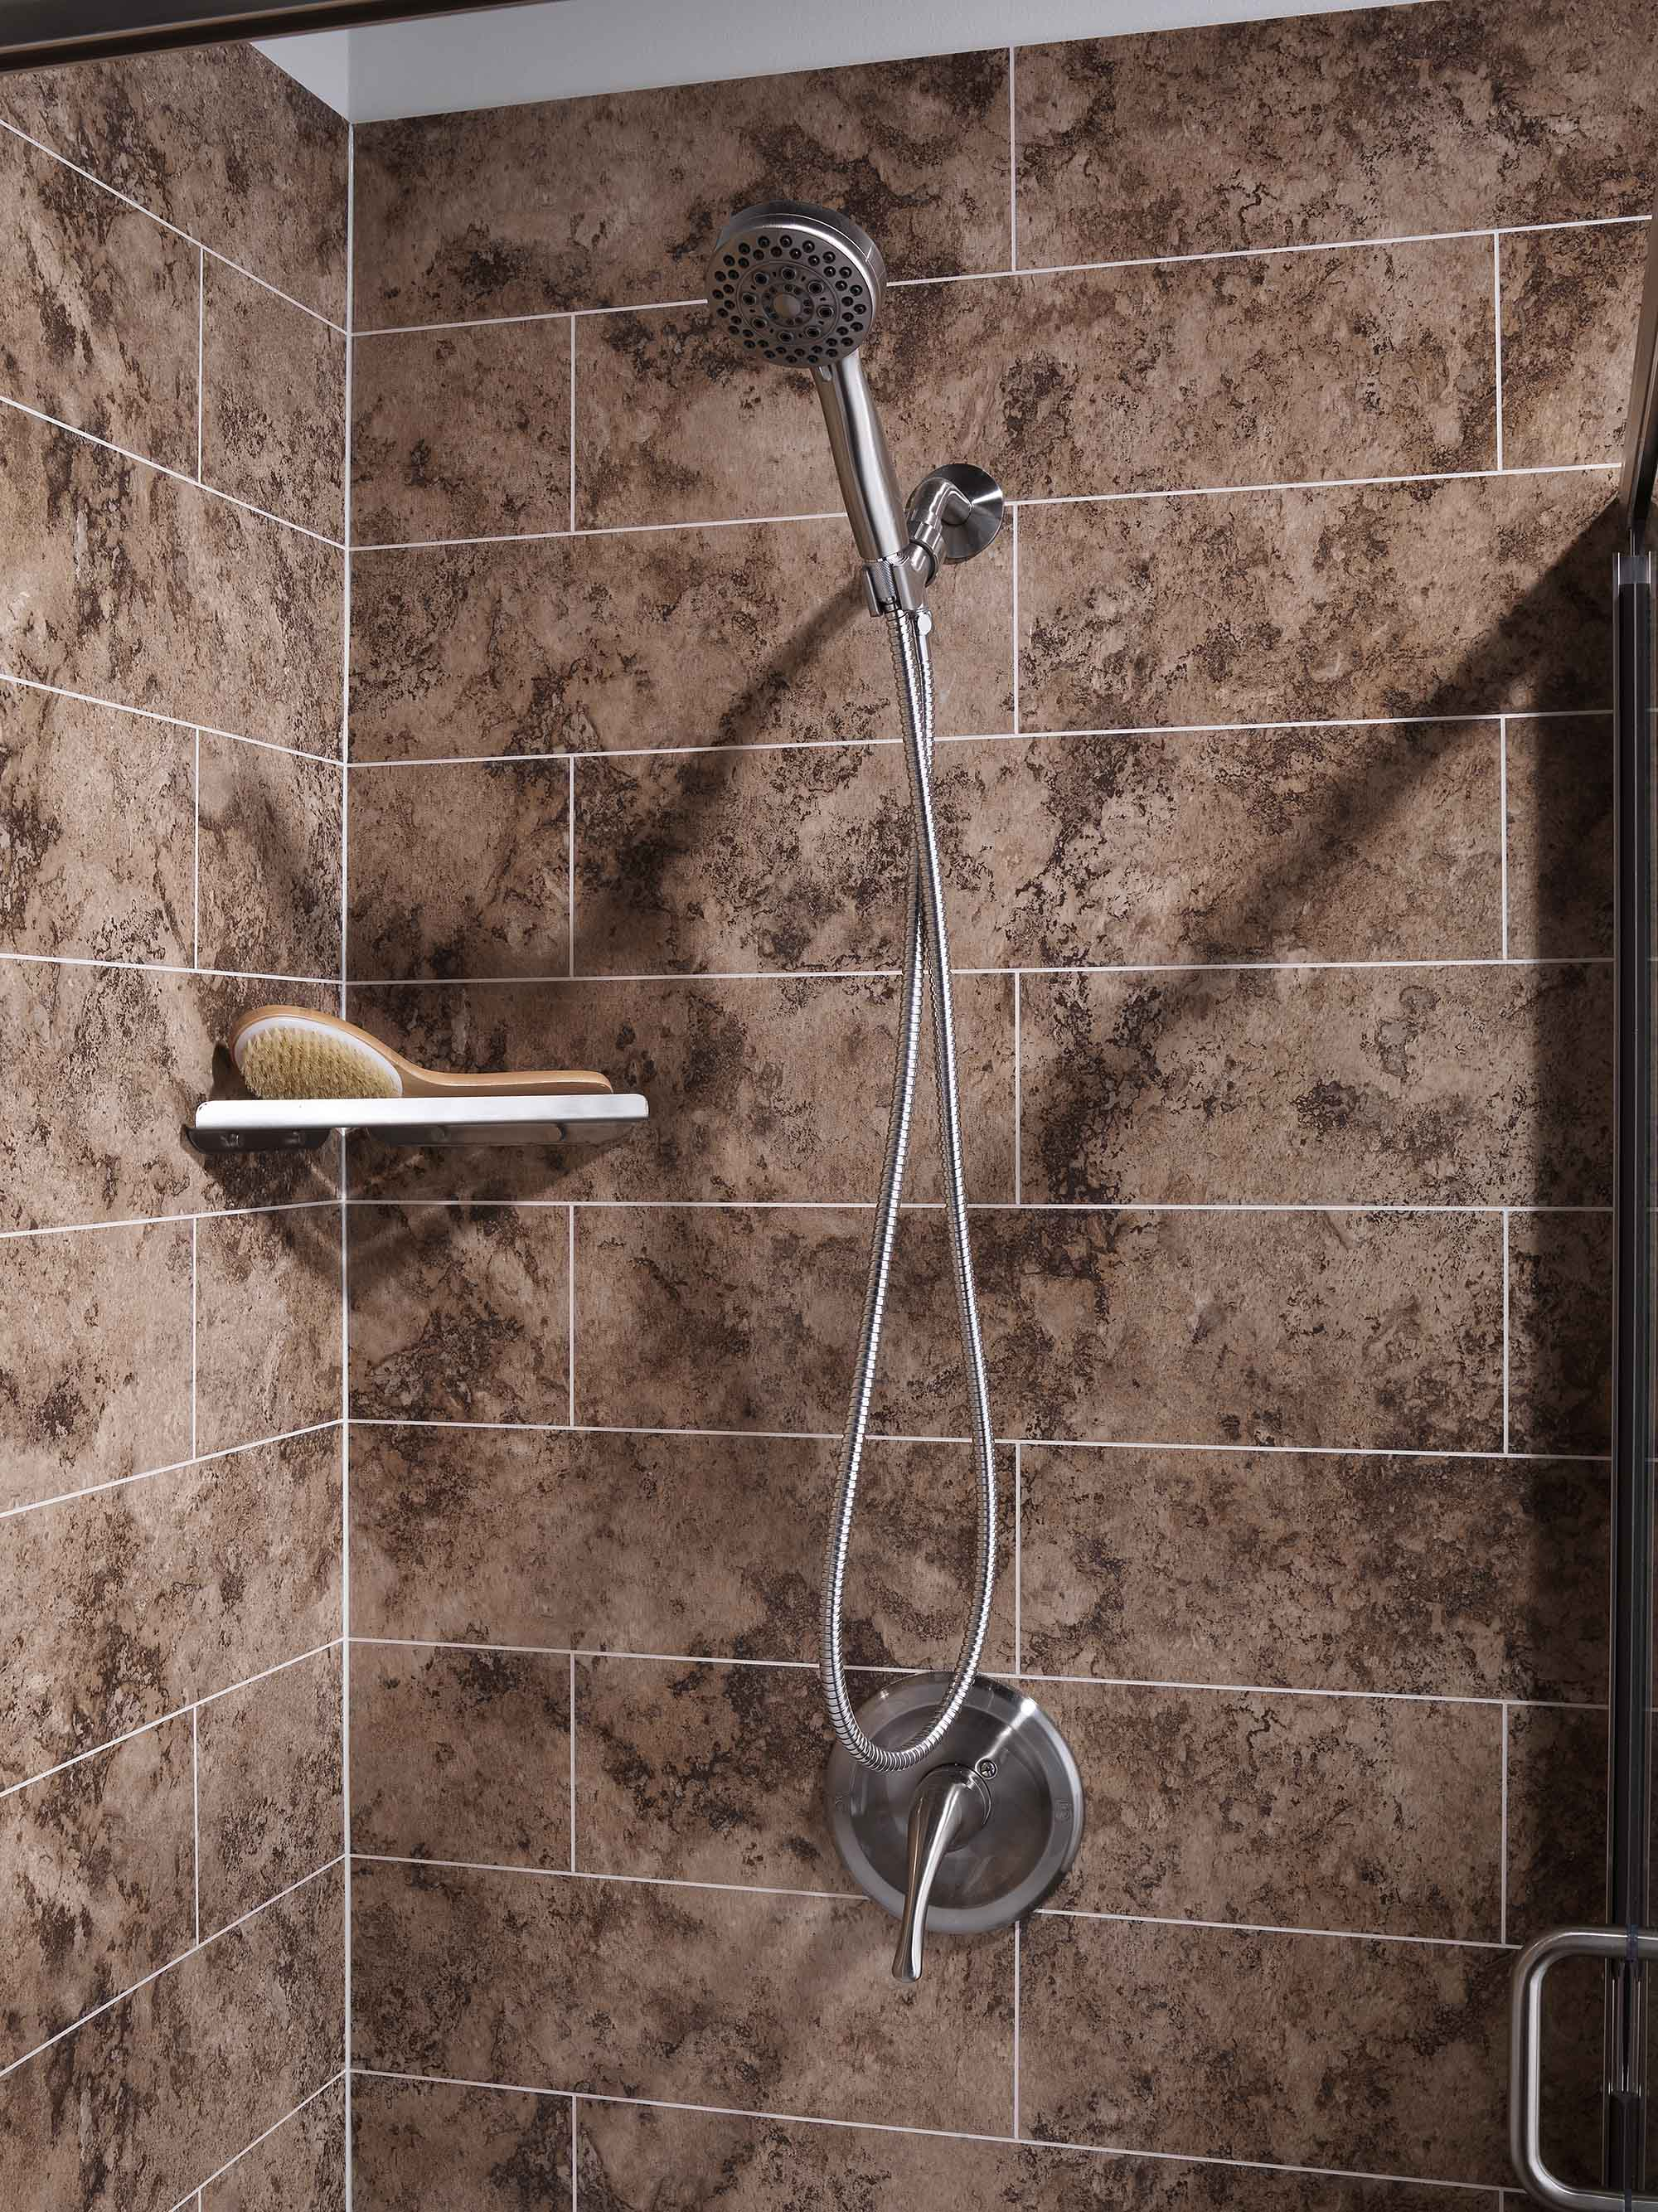 South Florida Shower Replacement - Bathrooms Plus Inc (9)